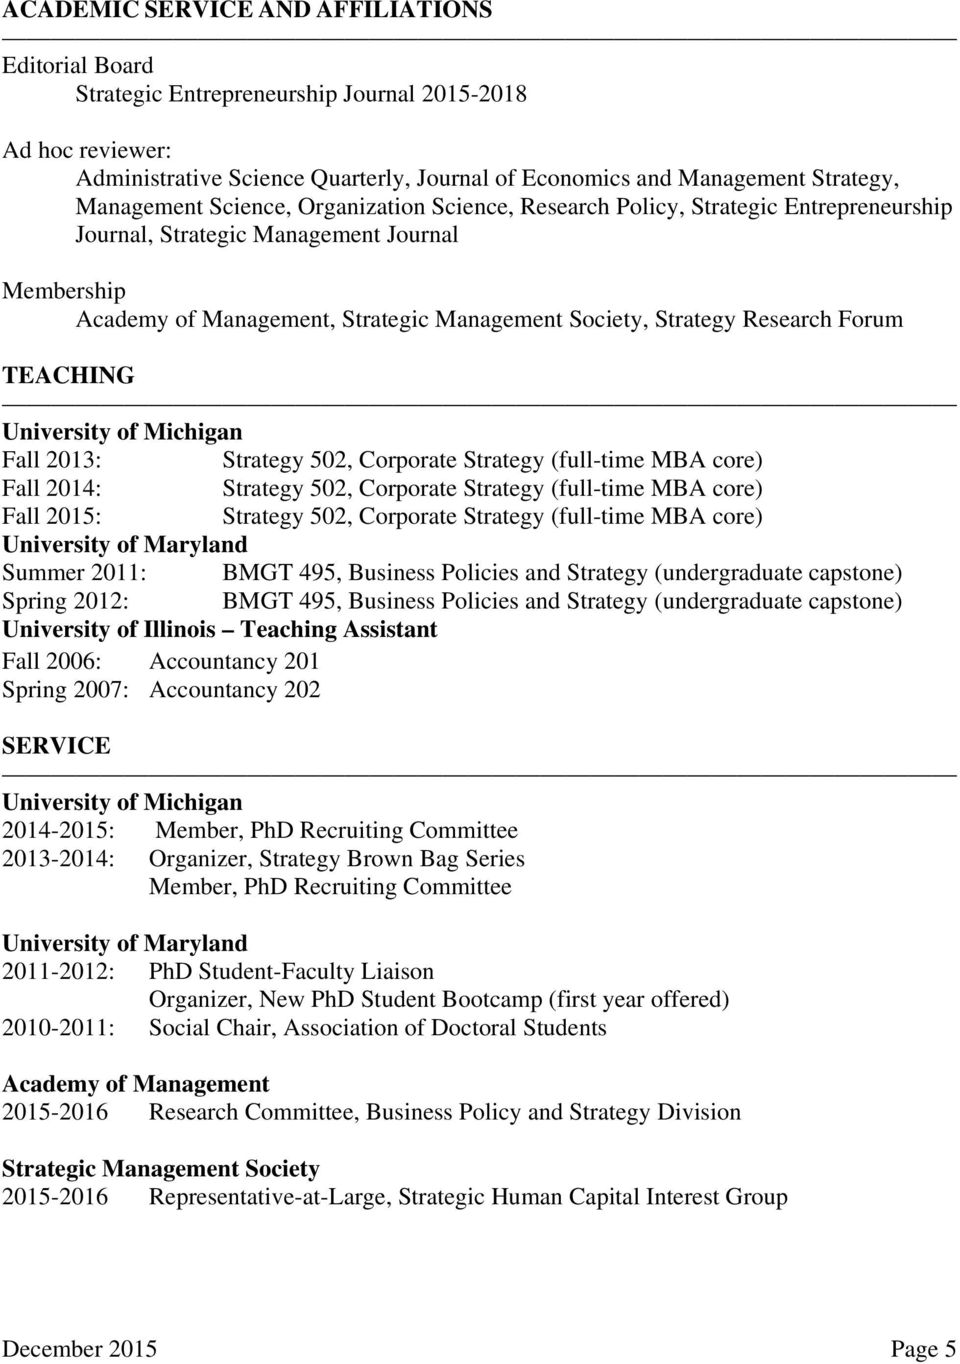 Research Forum TEACHING University of Michigan Fall 2013: Strategy 502, Corporate Strategy (full-time MBA core) Fall 2014: Strategy 502, Corporate Strategy (full-time MBA core) Fall 2015: Strategy